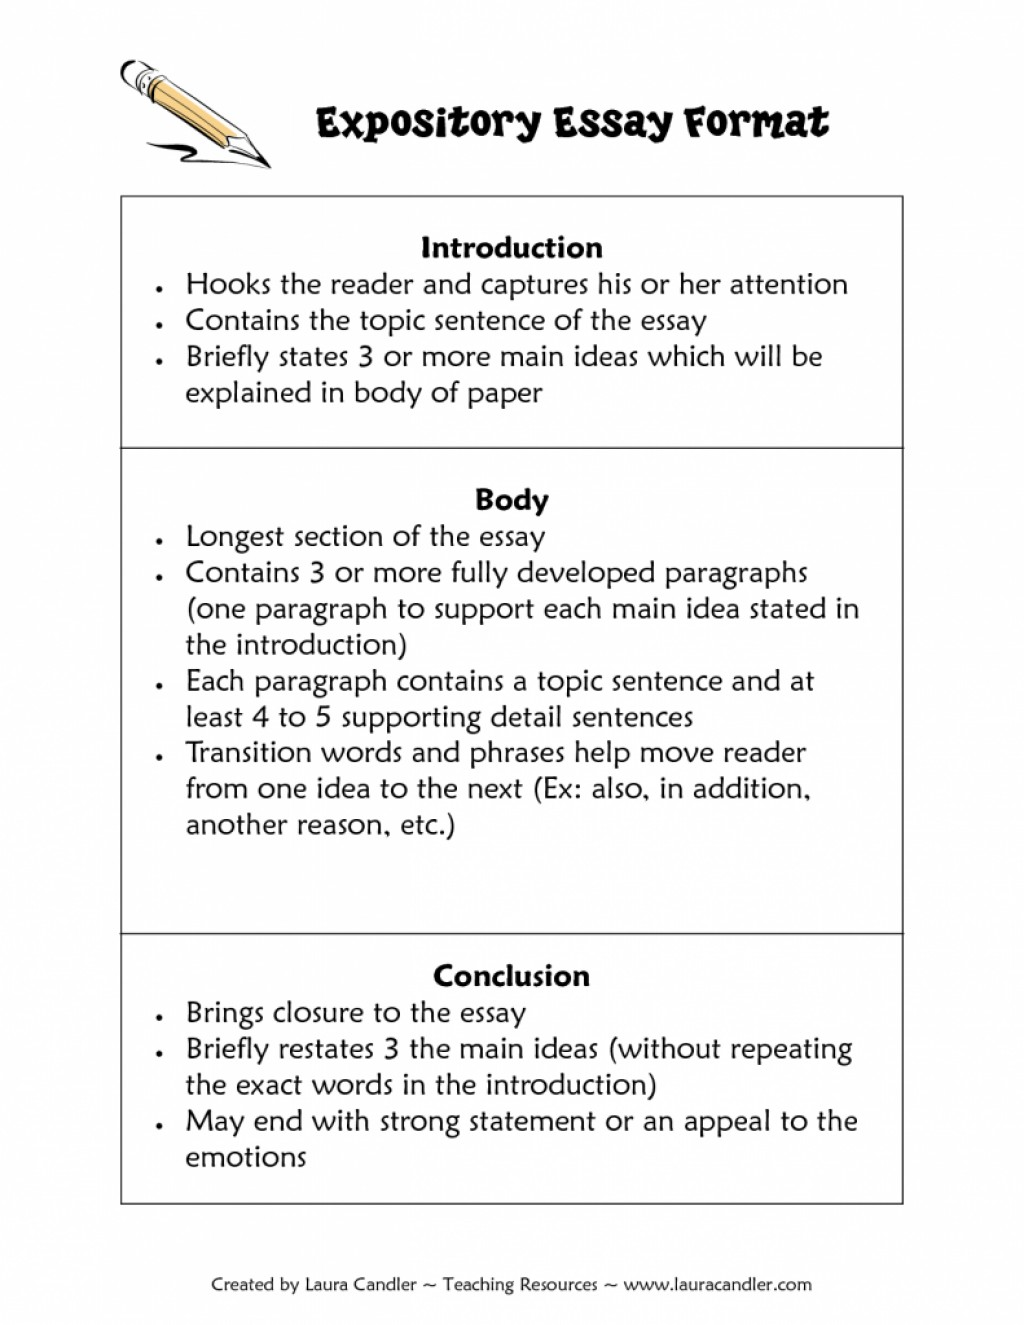 006 Essay Example Expository Format 791x1024 How To Write An Introduction Stirring Sample A Good Paragraph For Examples Large